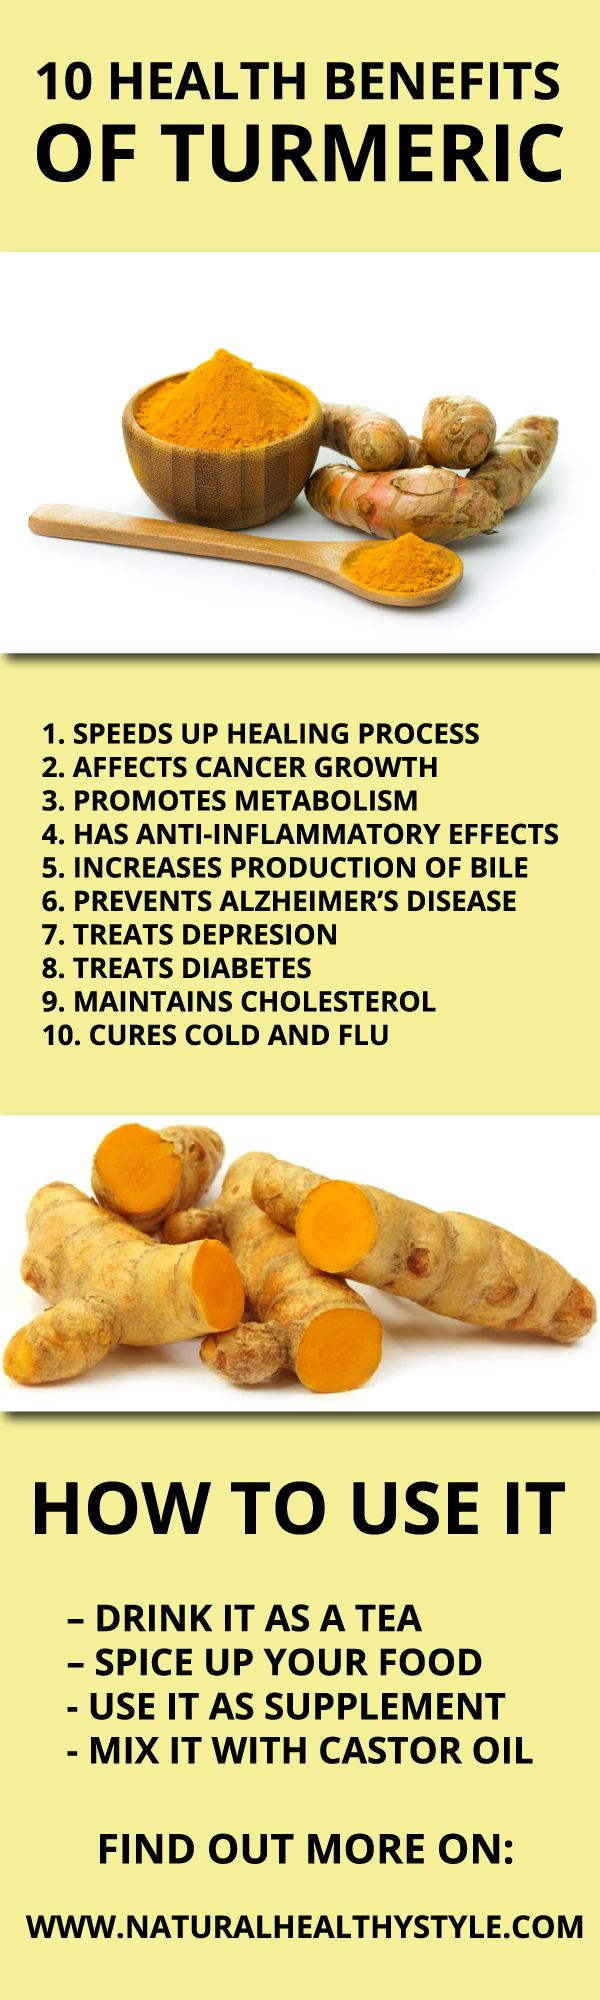 Turmeric has been used as a herb over the centuries for its anti-inflammatory properties and is also packed with several nutrients, including dietary fiber, sodium, vitamin C, E, K, calcium, iron, zinc and magnesium. Due to all these properties, this oran http://www.ebay.com/itm/Curcumin-Blend-60-Count-/322482882728